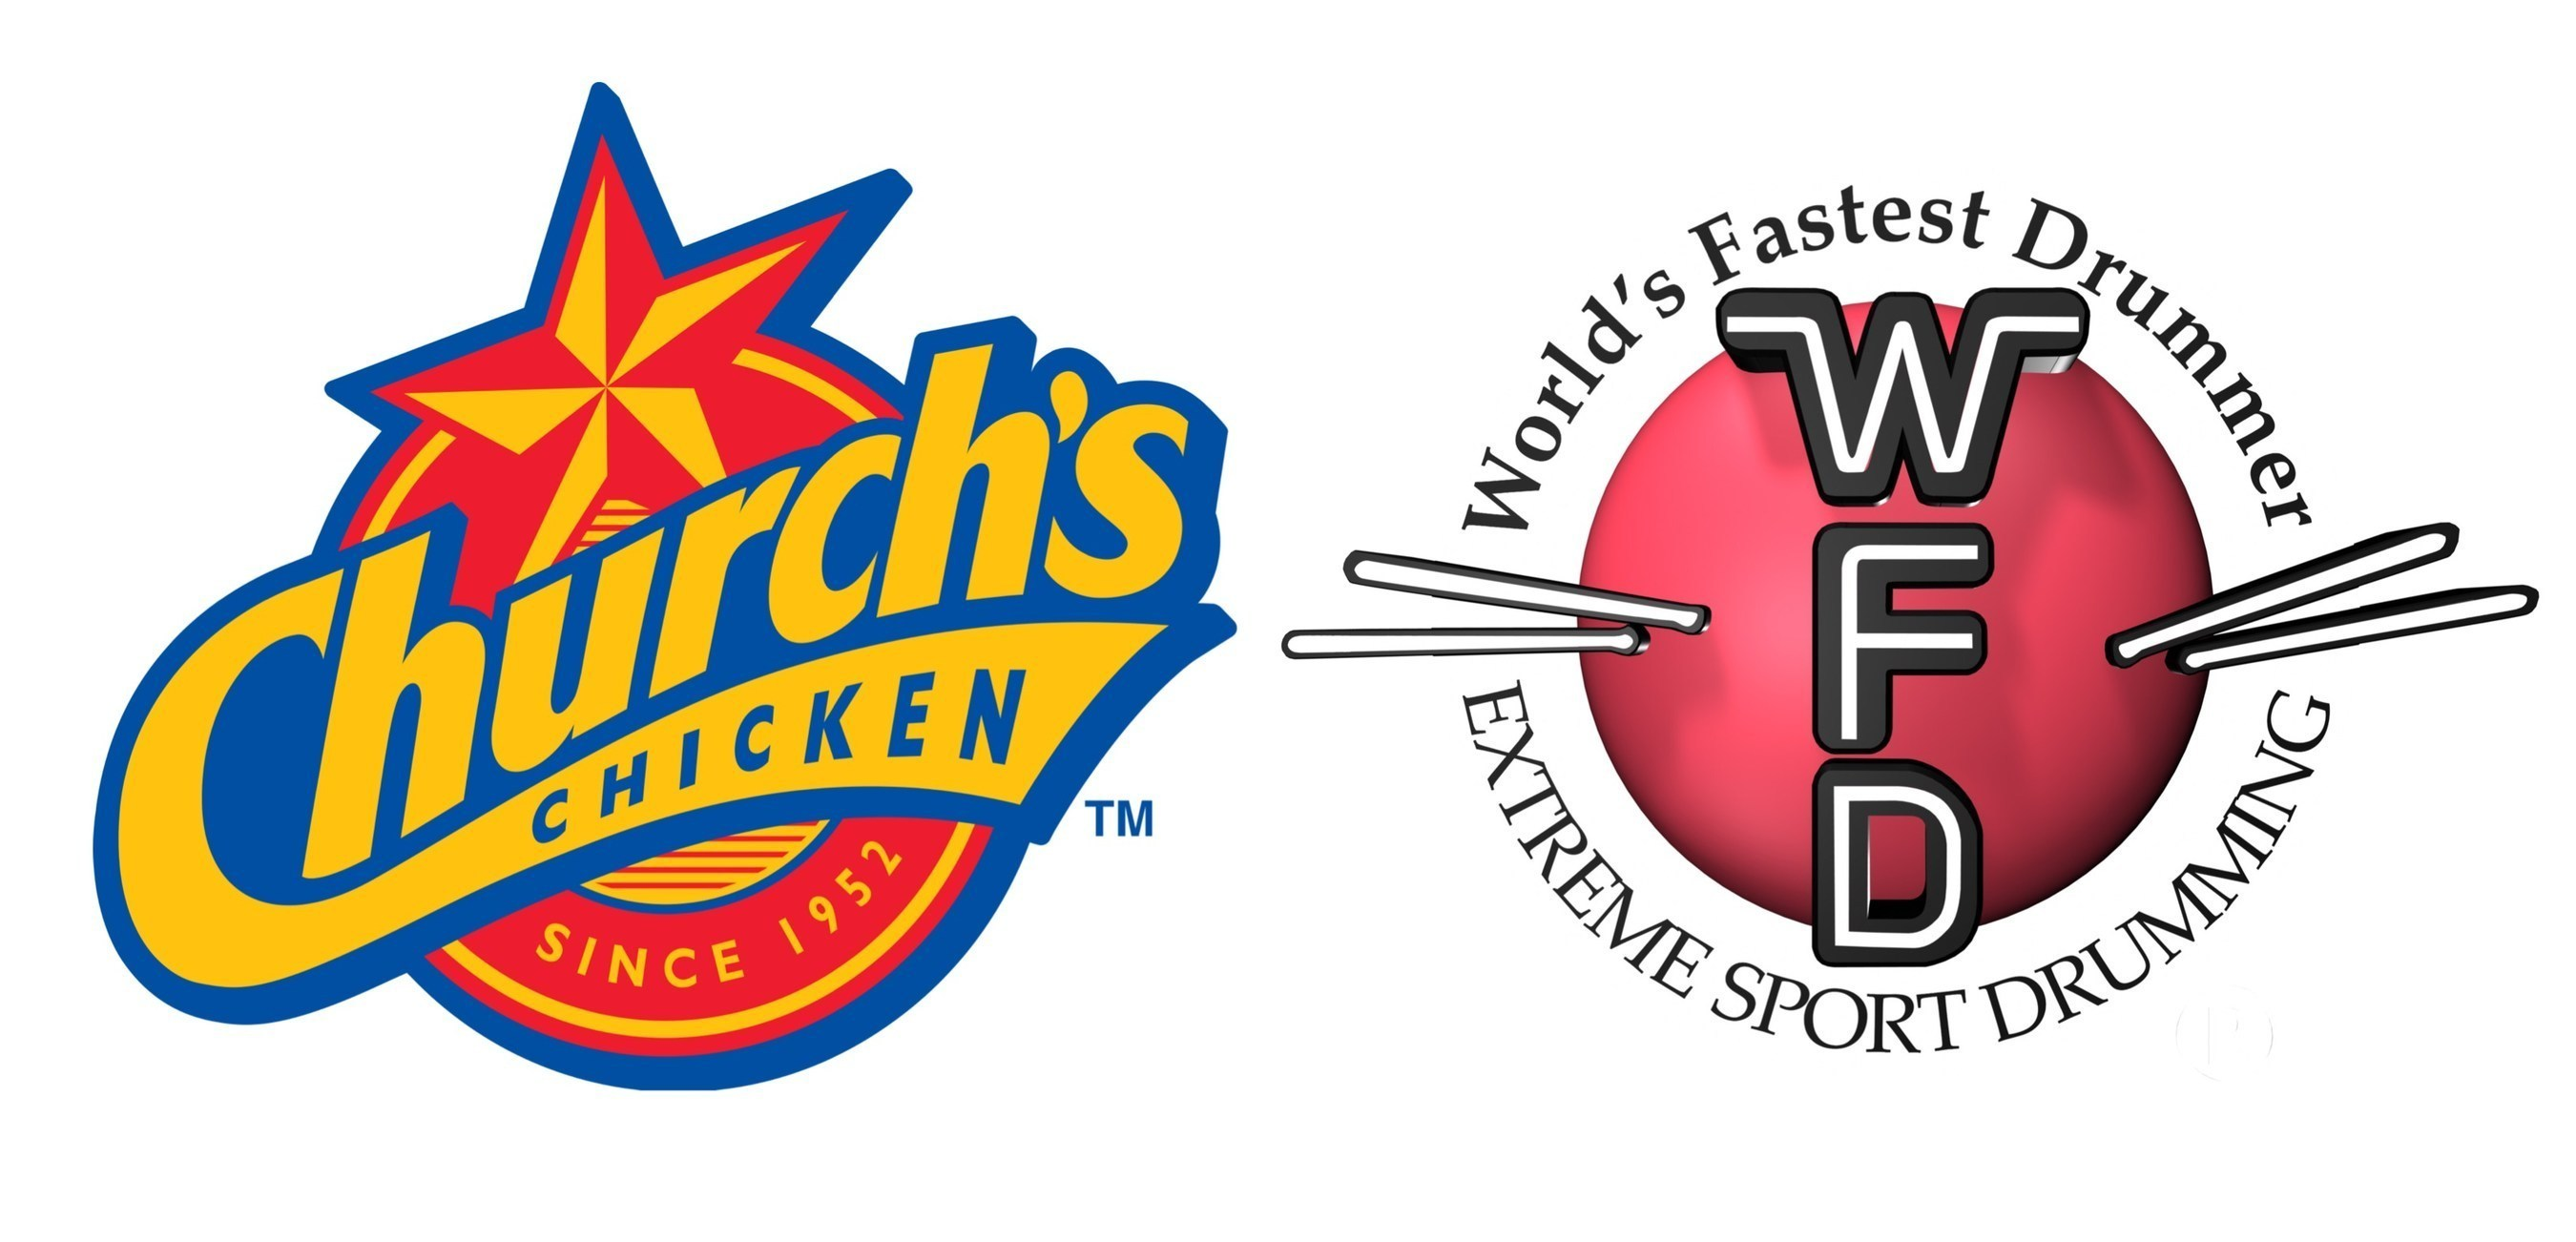 Church's Chicken® Marches To A Different Drumstick With 2015 World's Fastest Drummer Championship,